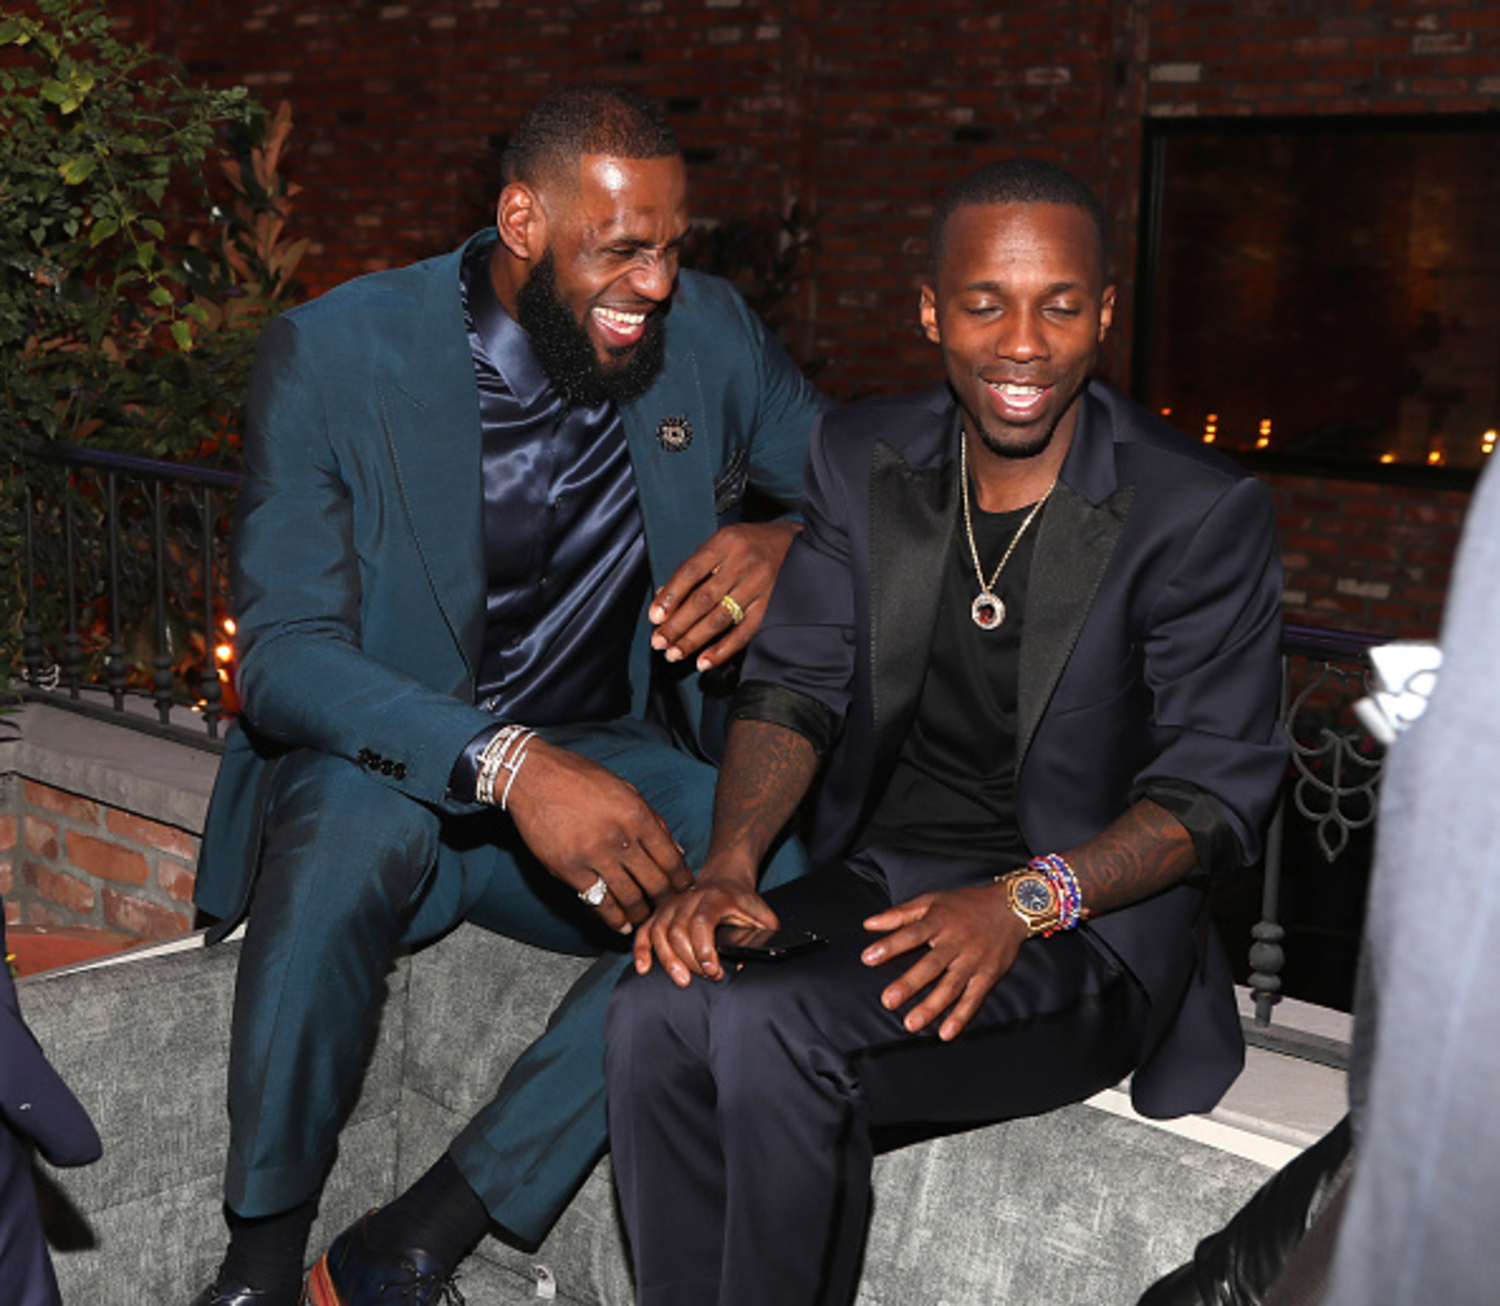 LeBron James' Agent Rich Paul Has an Impressive Net Worth